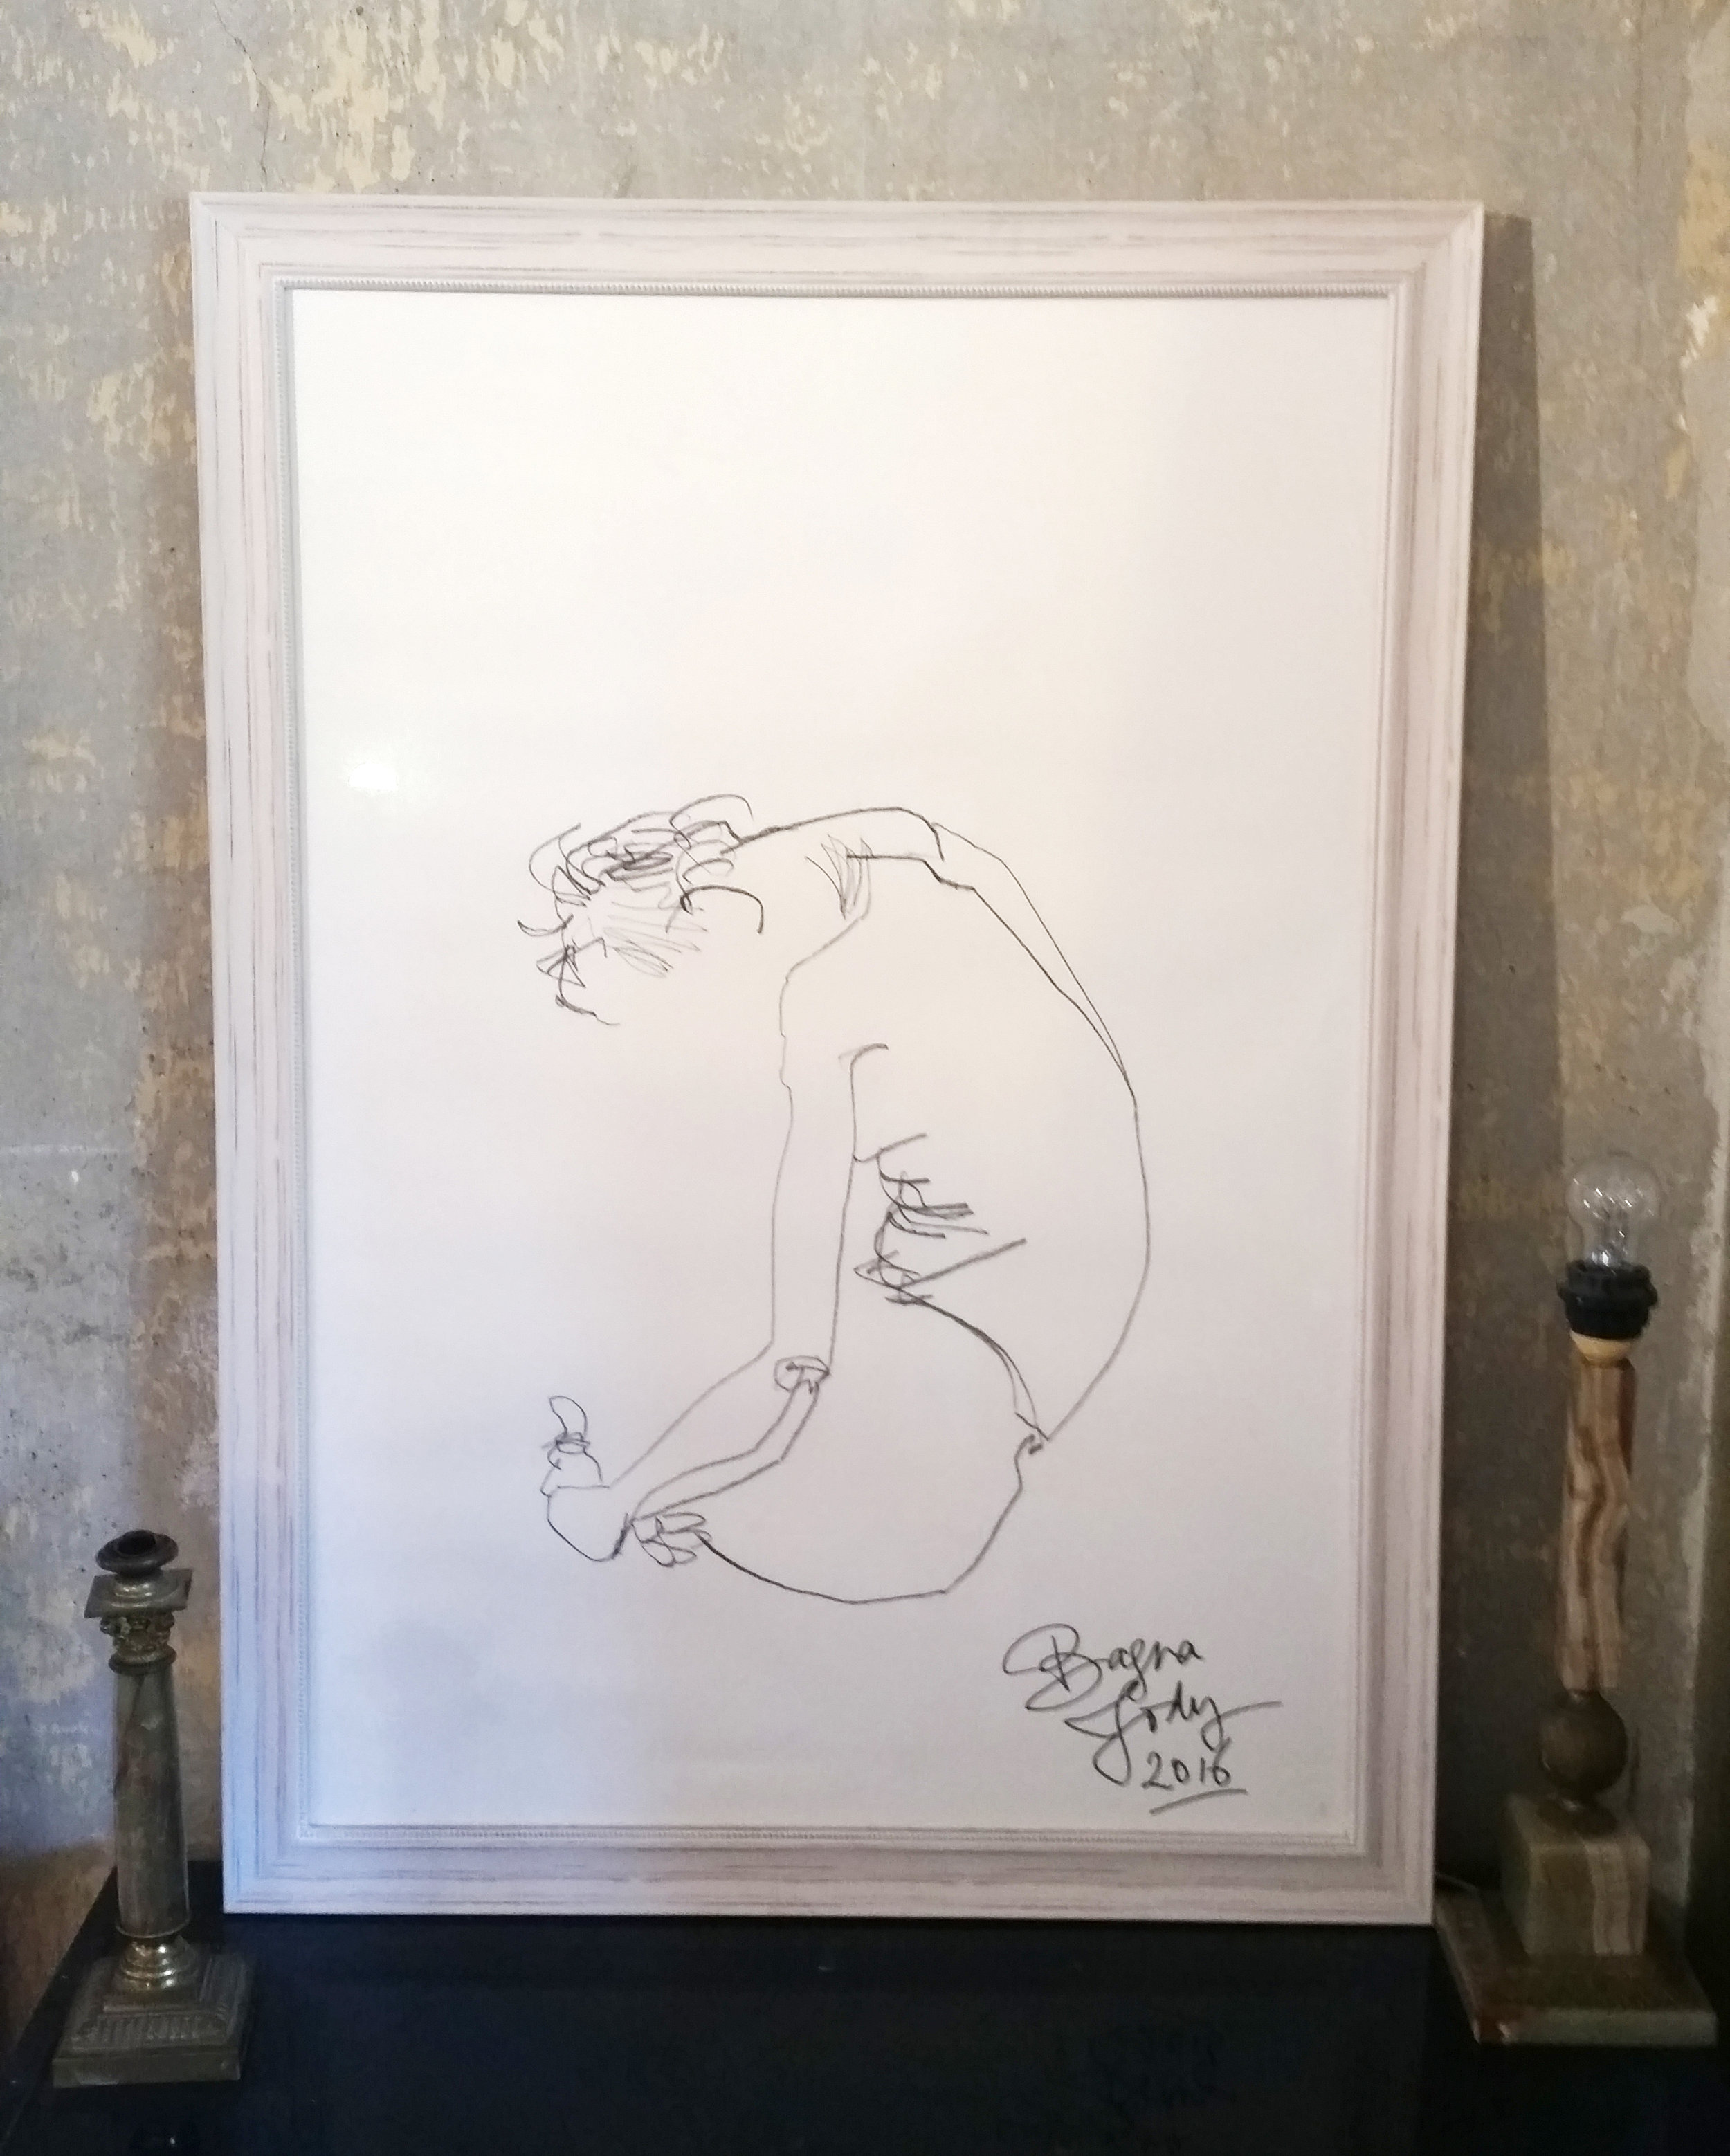 COILED - 106 x 77 cm |Siberian on paper | Custom framedSelf portrait caressing and being.